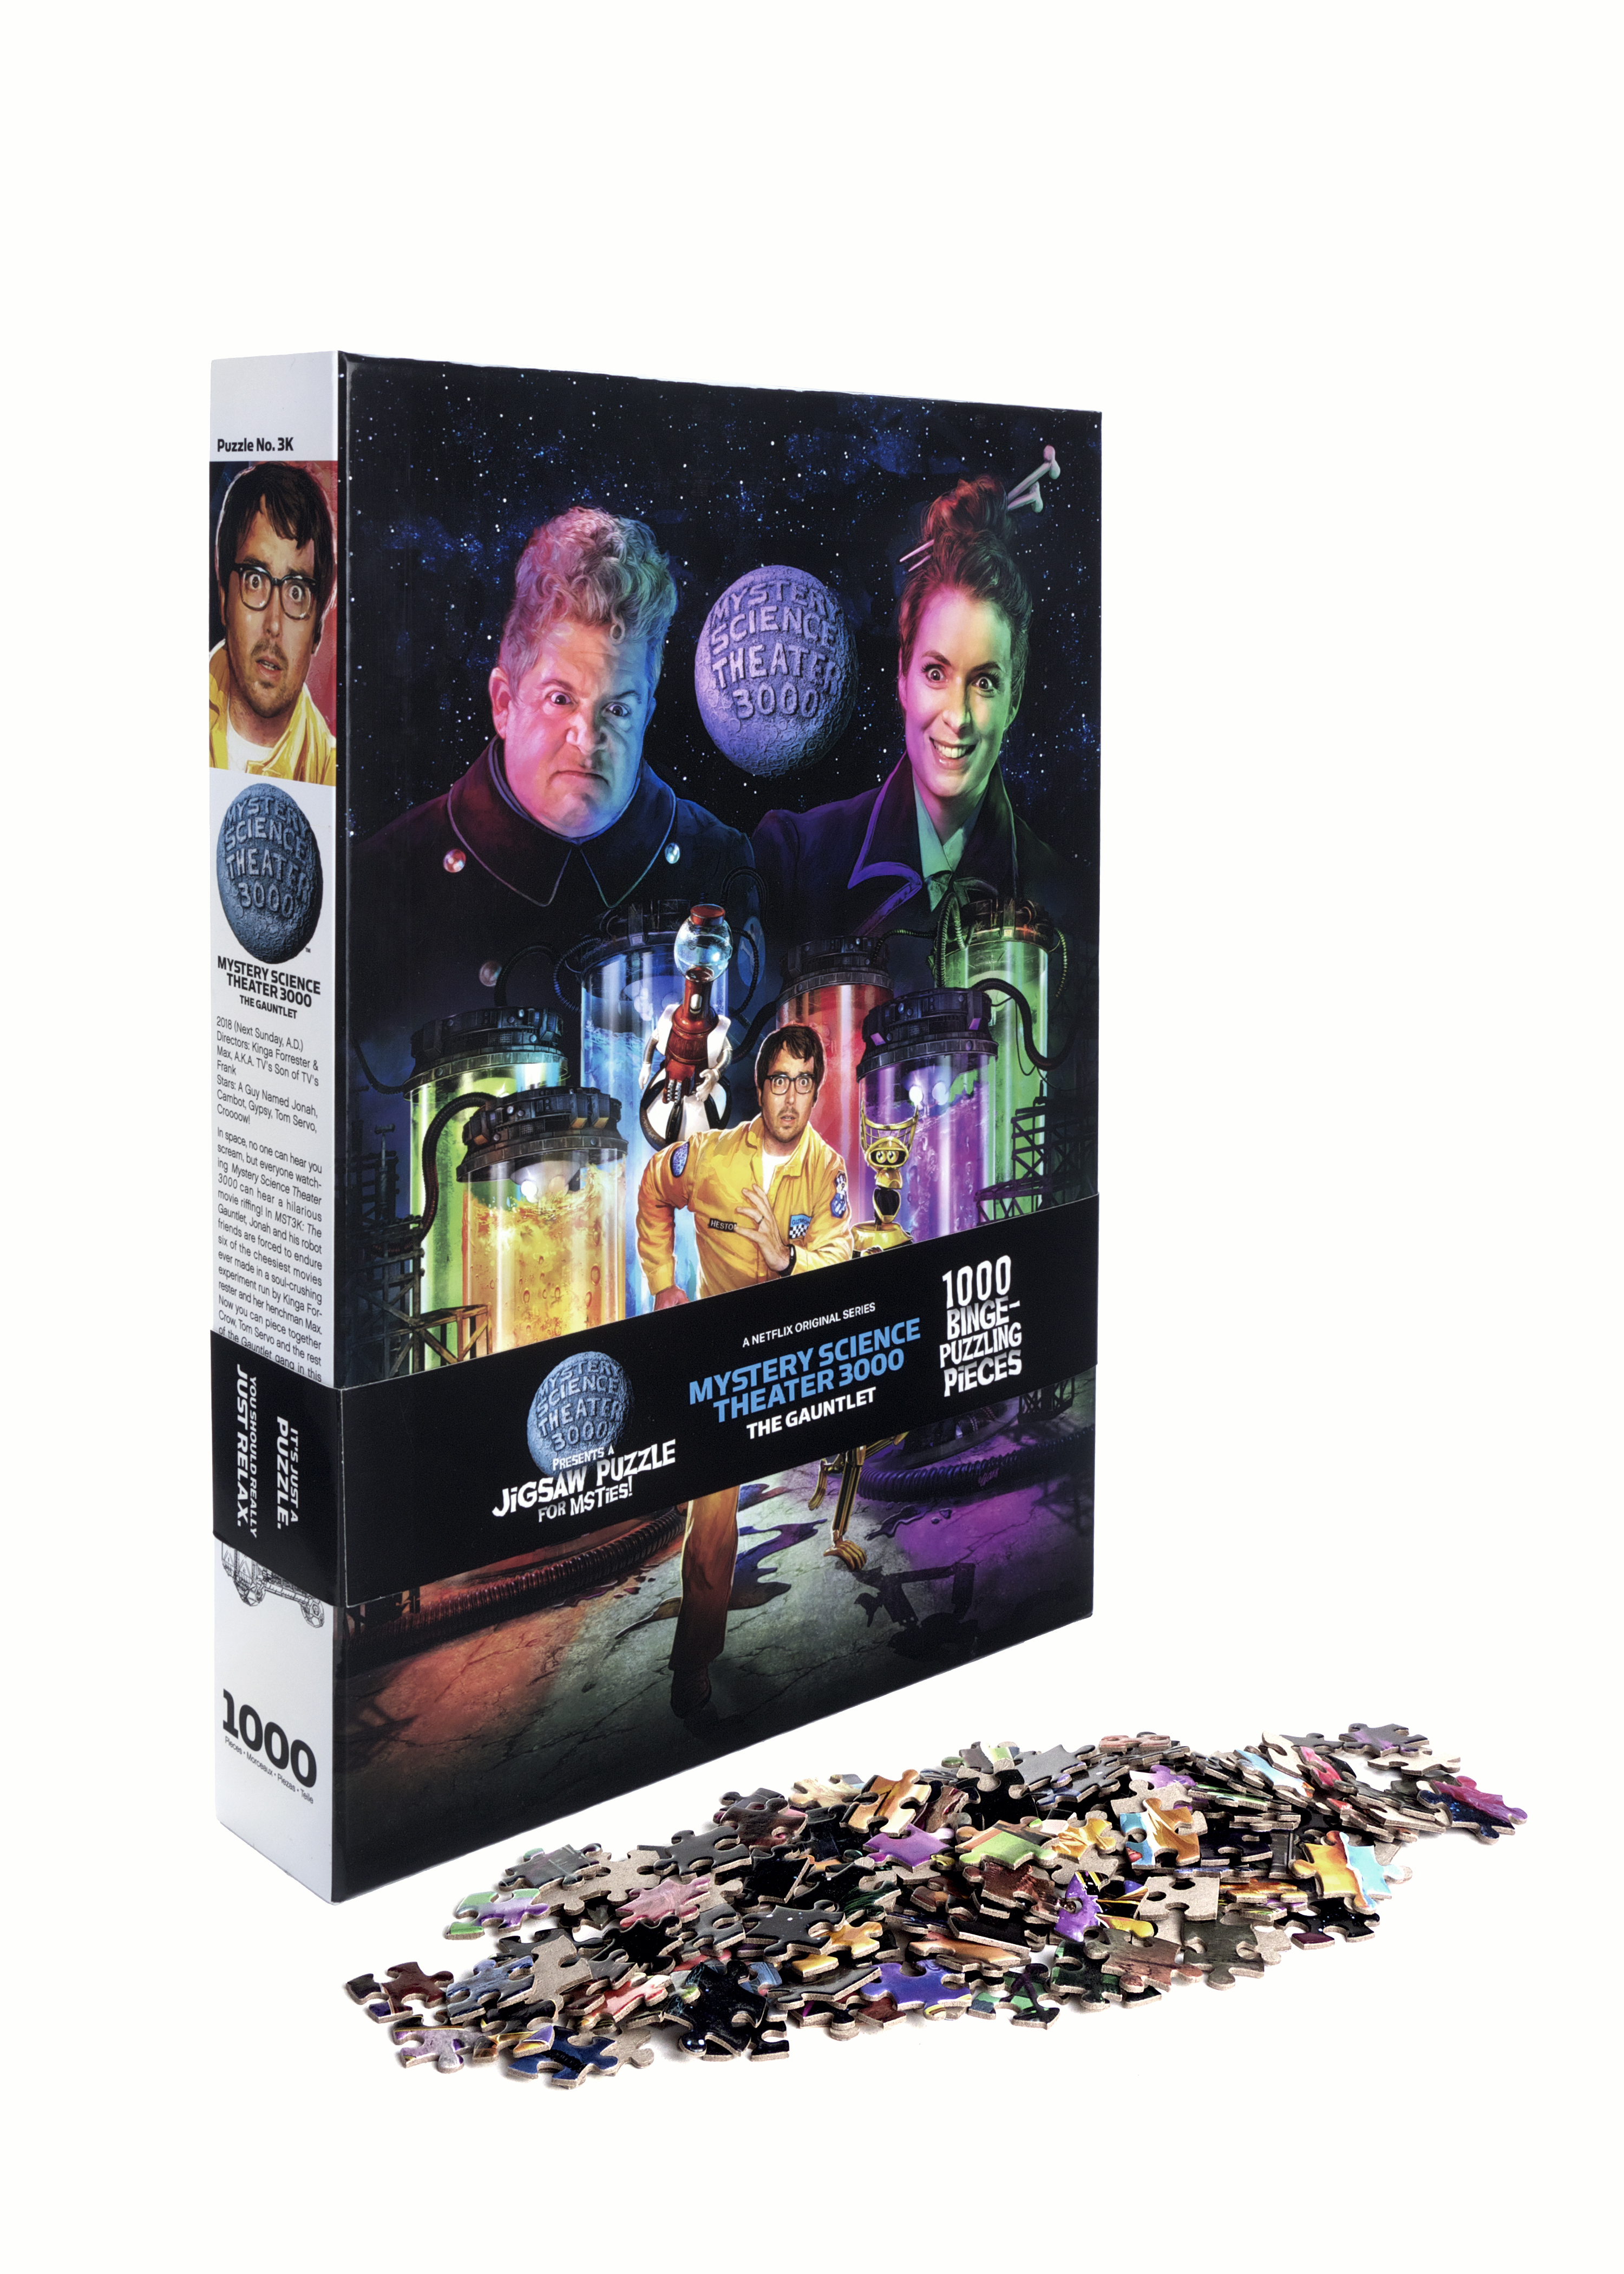 MST3K_Puzzle_Band_Pieces.jpg